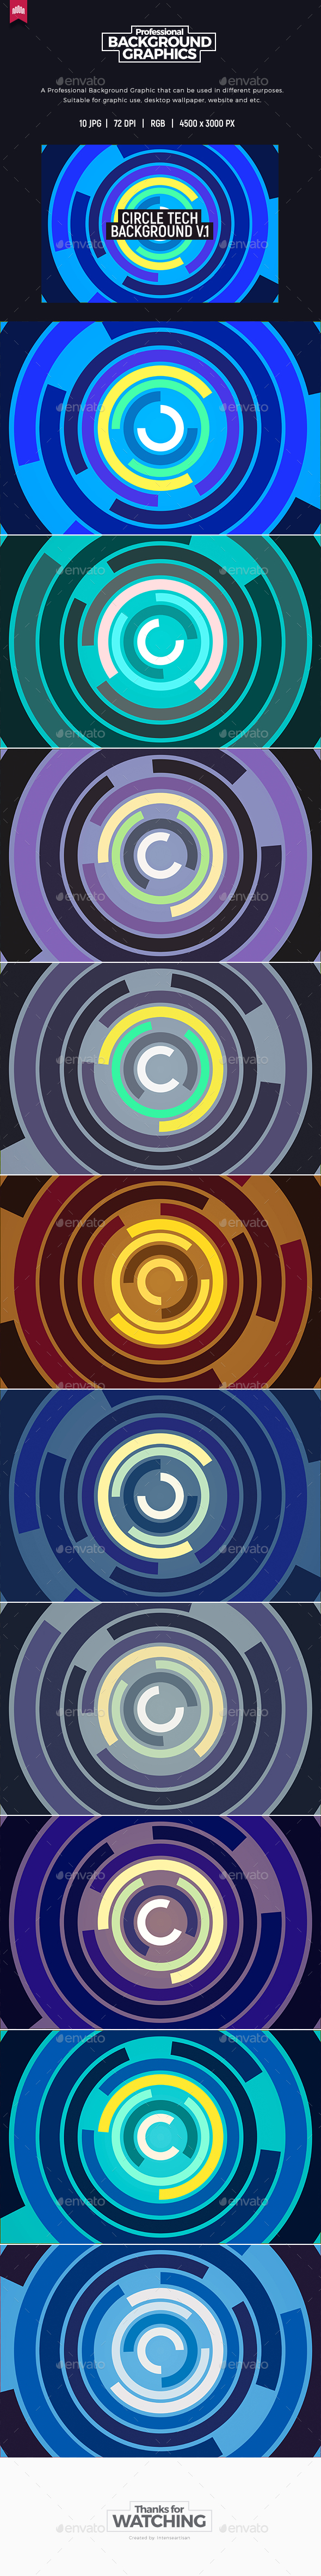 Circle Tech Background V.1 - Tech / Futuristic Backgrounds